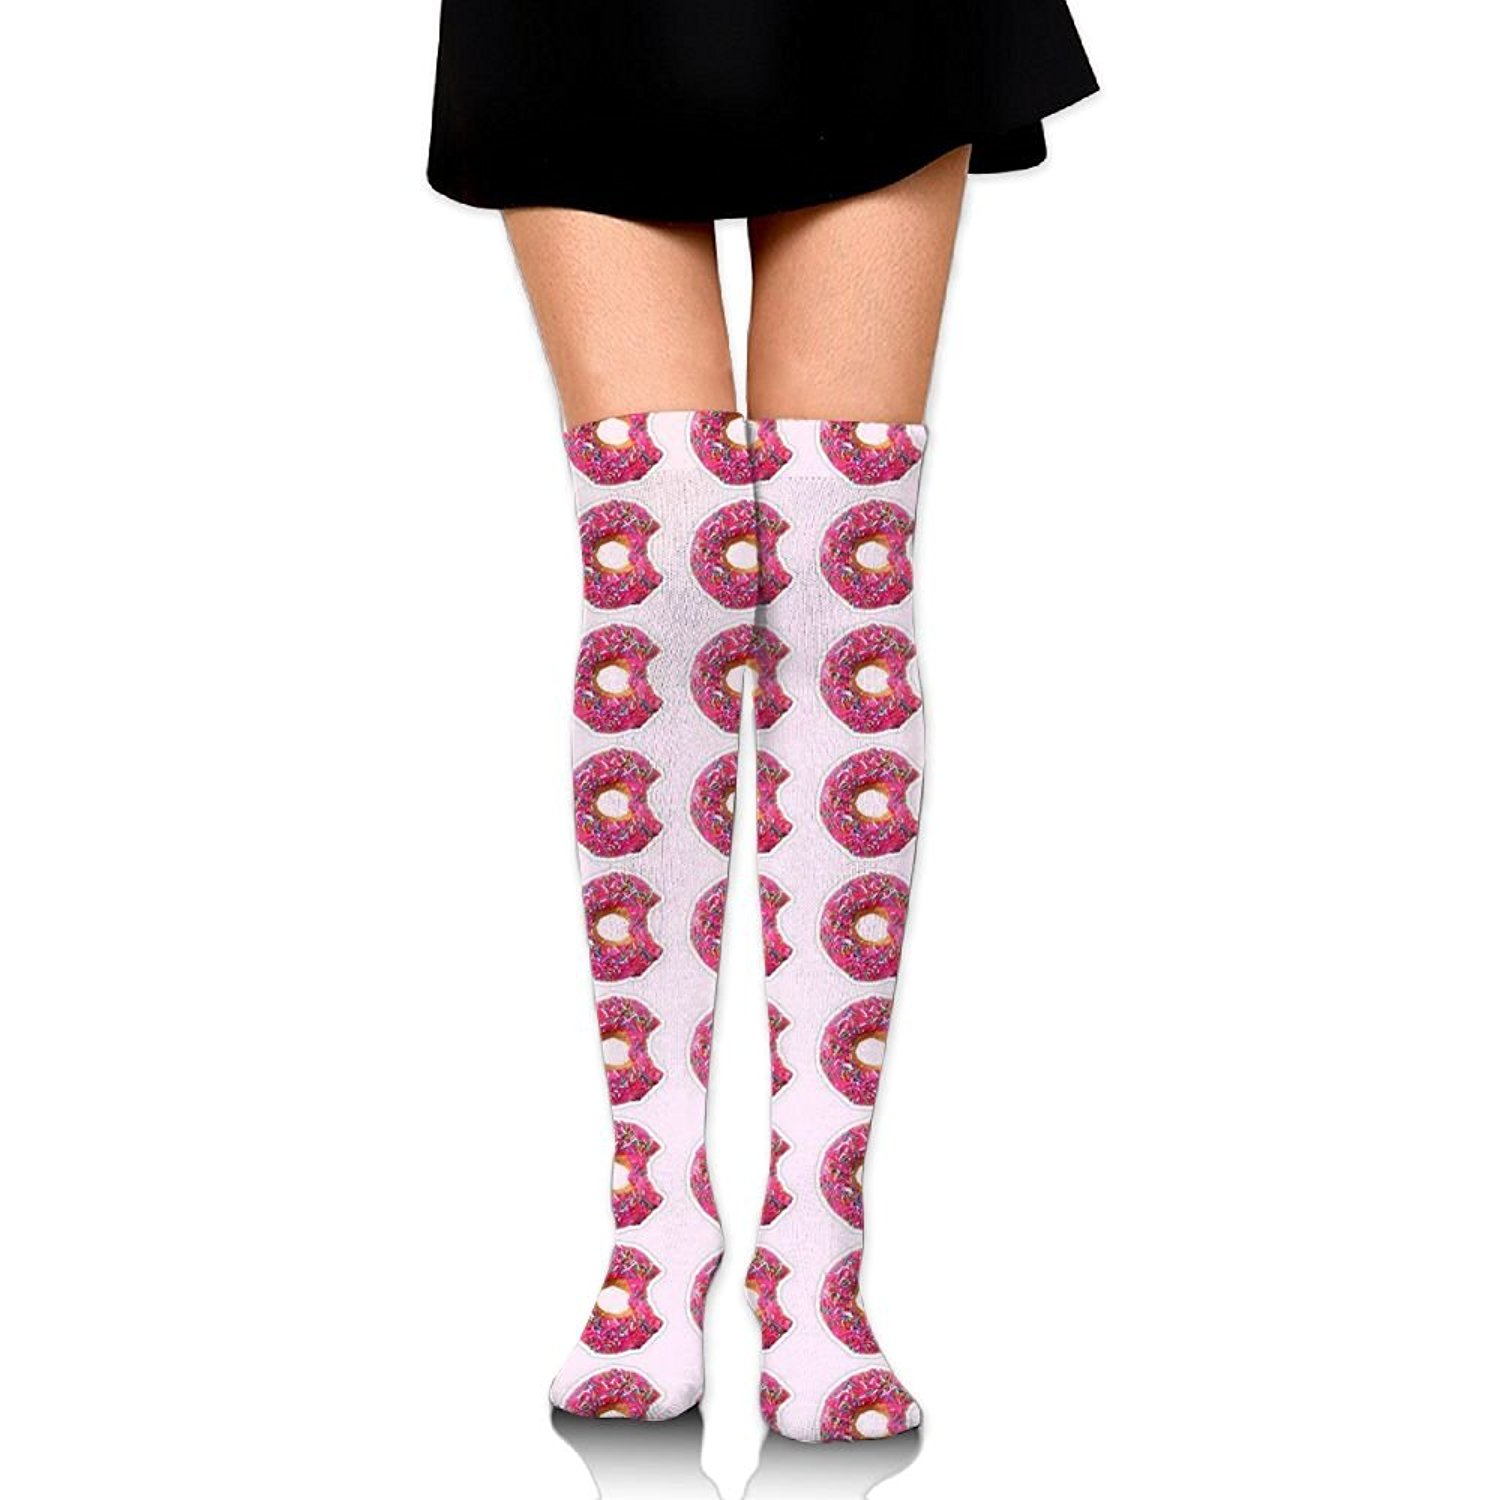 Zaqxsw Doughnut Food Women Fashion Thigh High Socks Cotton Socks For Ladies